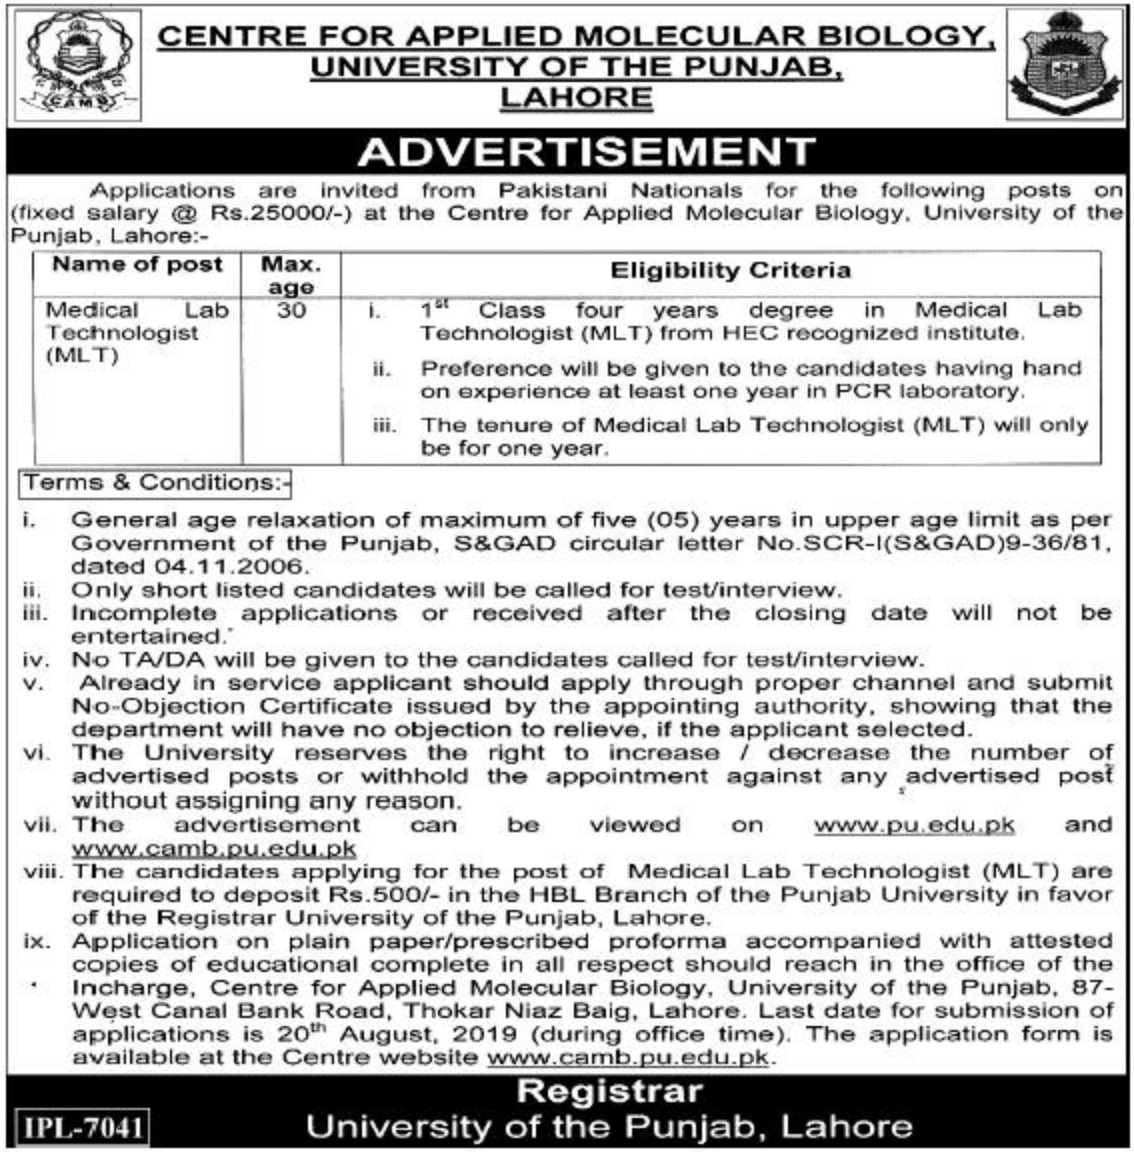 University of Punjab Lahore Jobs 2019 CAMB PU Application Form Download